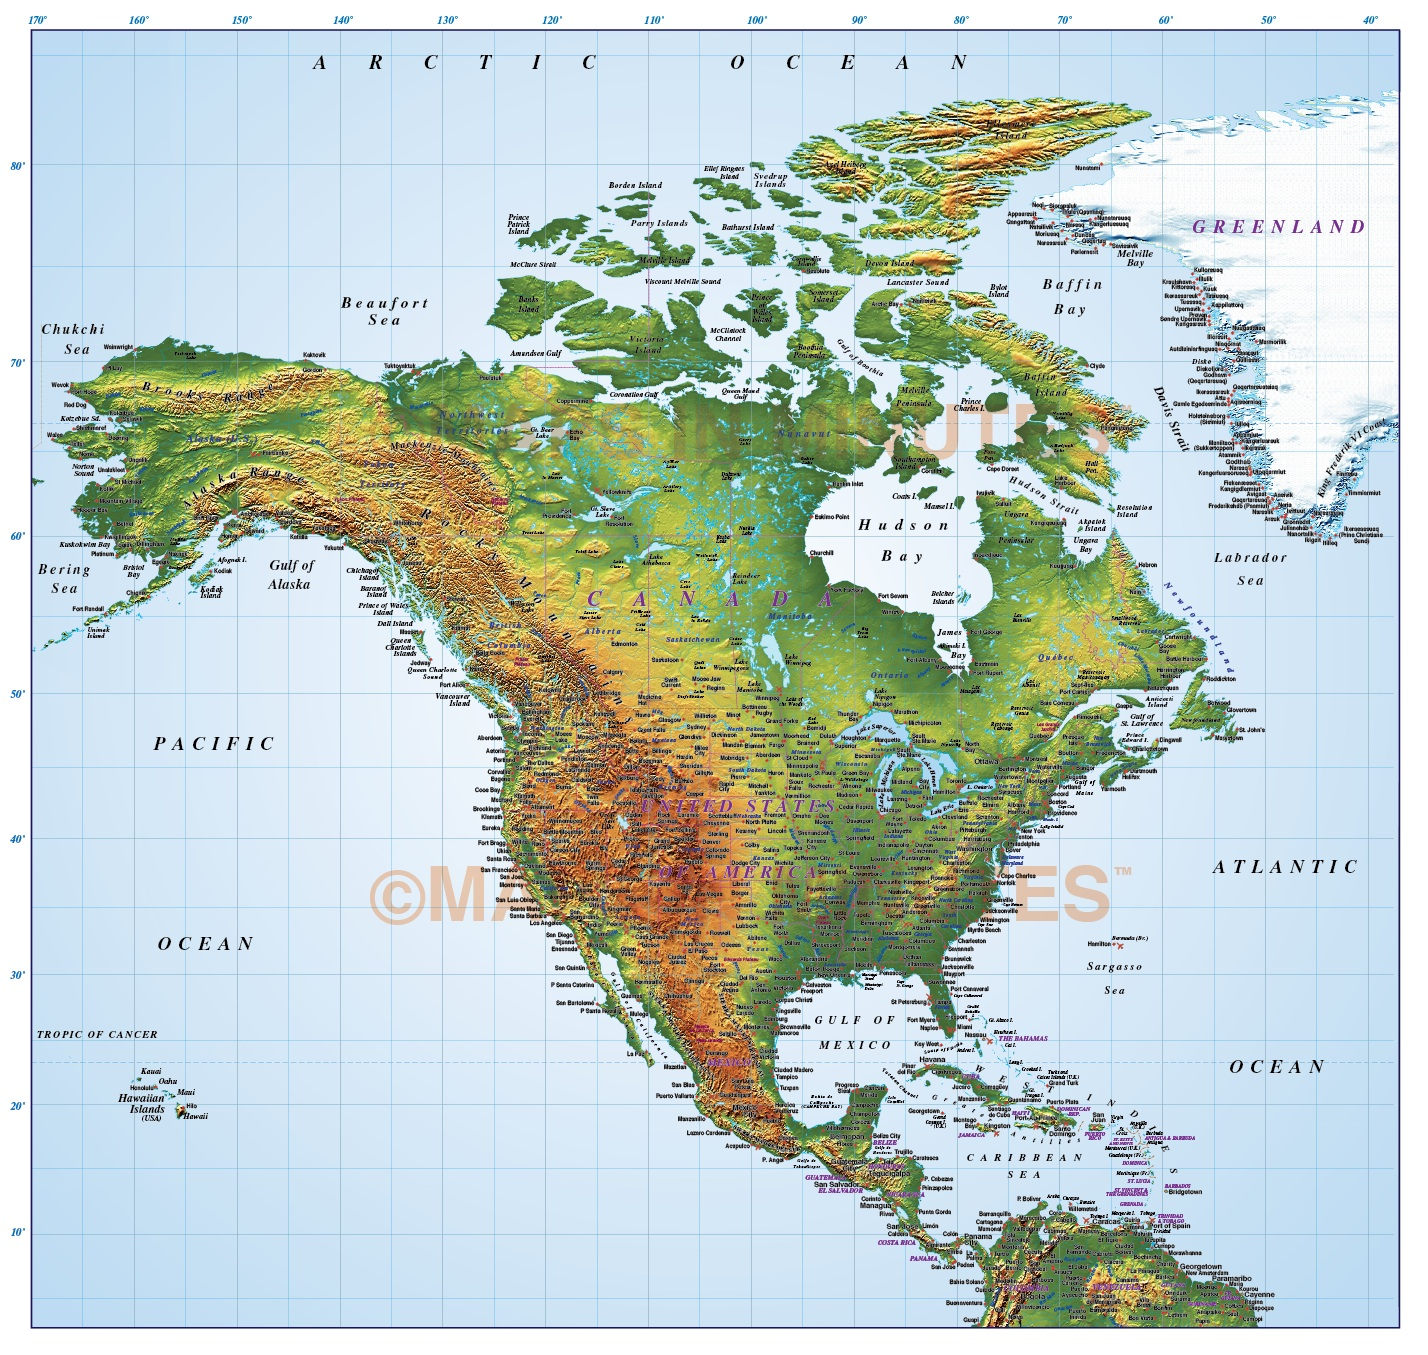 North America Strong Relief map in Illustrator CS format.